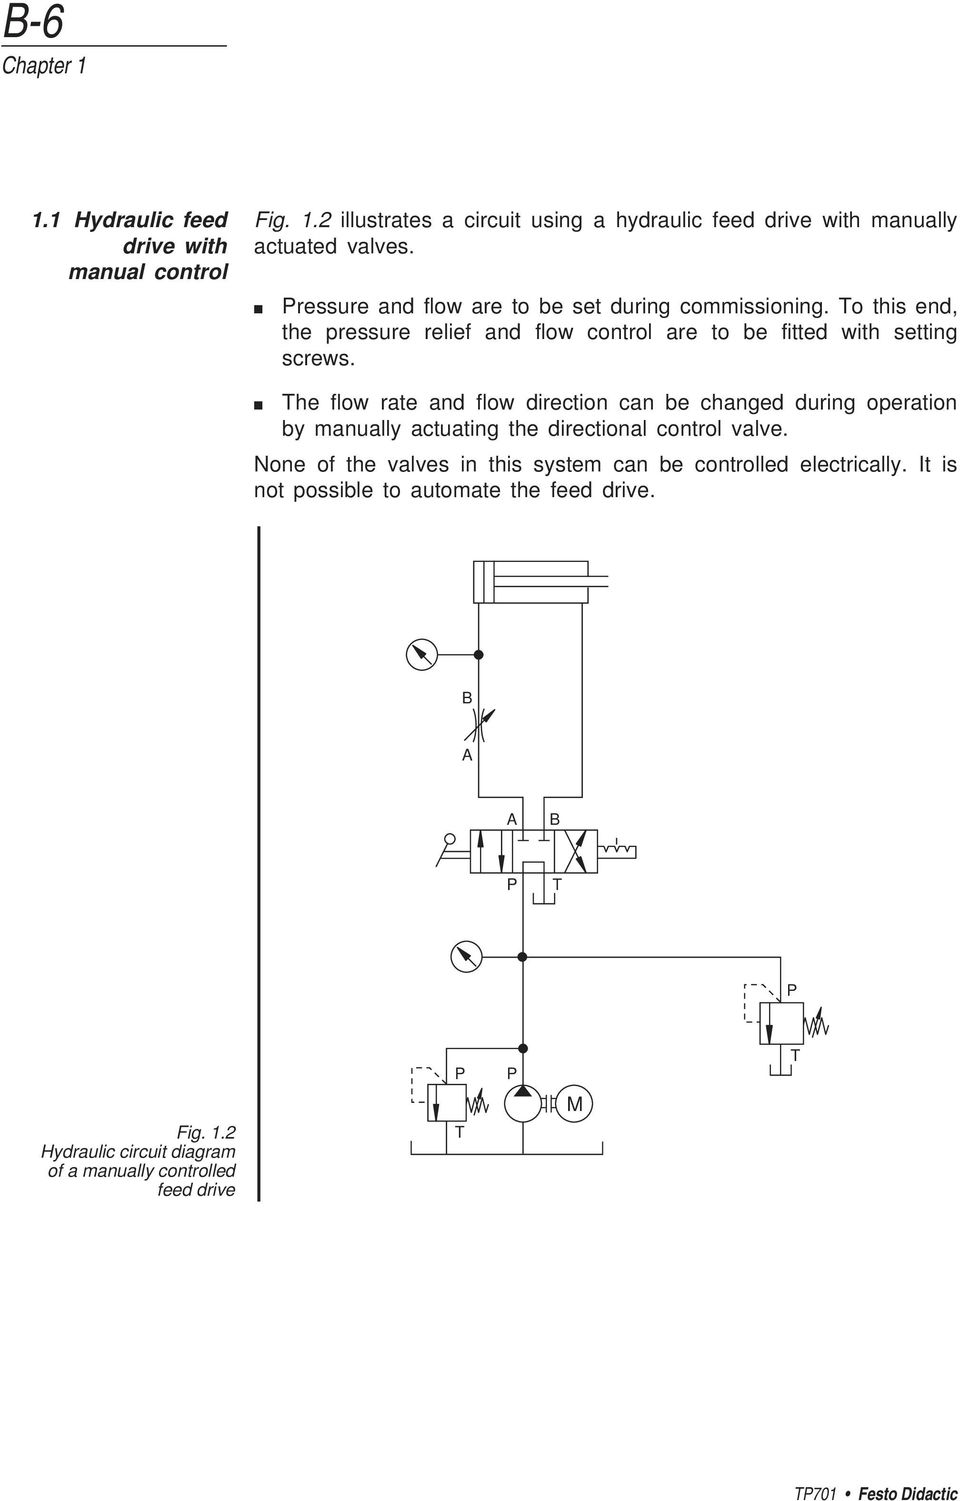 Festo Limit Switch Wiring Diagram. Dc Motor Control Circuit Diagram on limit switch schematic, limit switch furnace diagram, limit switch motor diagram, limit switch control diagram, pellet stove parts diagram, limit switch sensor, dc motor control circuit diagram, limit switch valve, whitfield stoves diagram, forward reverse motor control diagram, limit switch circuit diagram, limit switch parts,